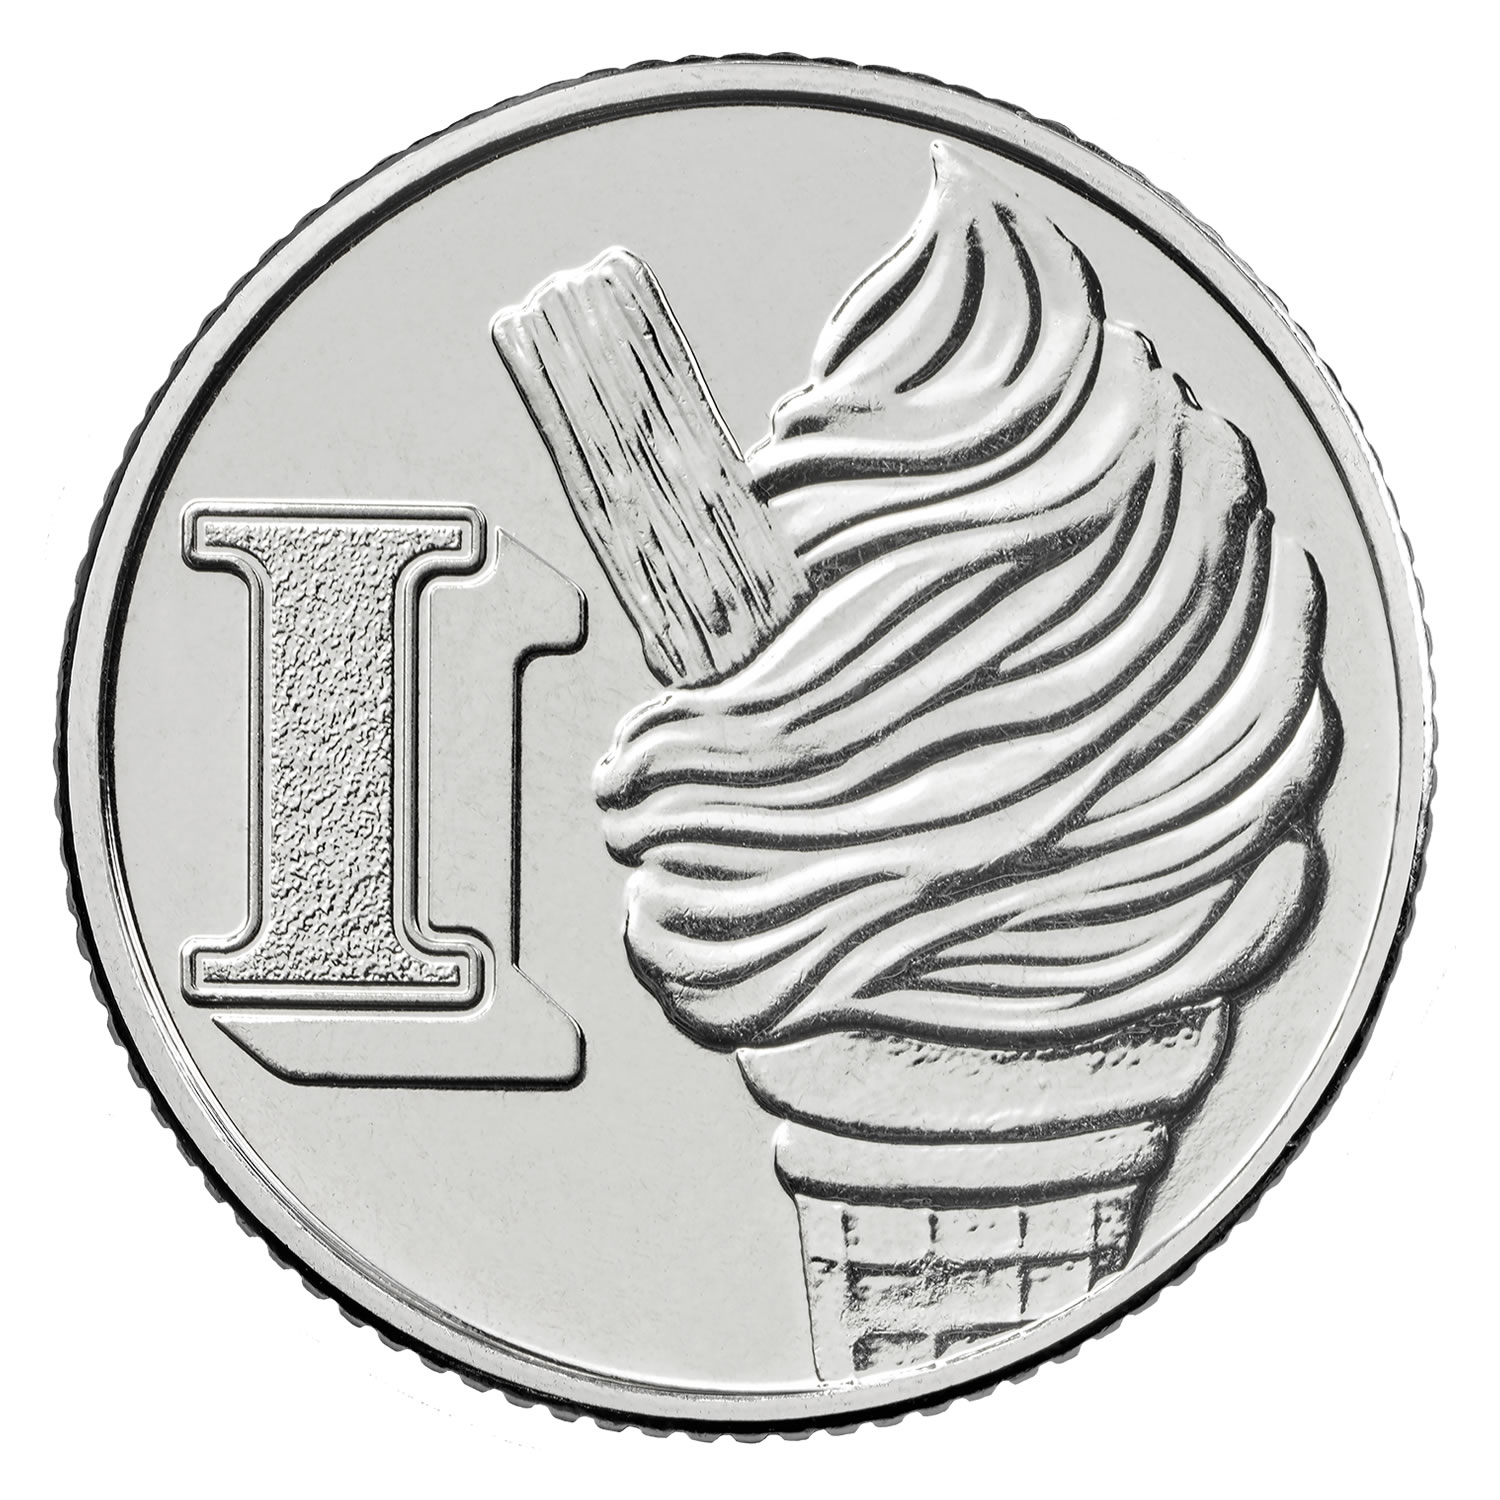 I - Ice-Cream Cone 2018 UK 10p Early Strike Uncirculated Coin